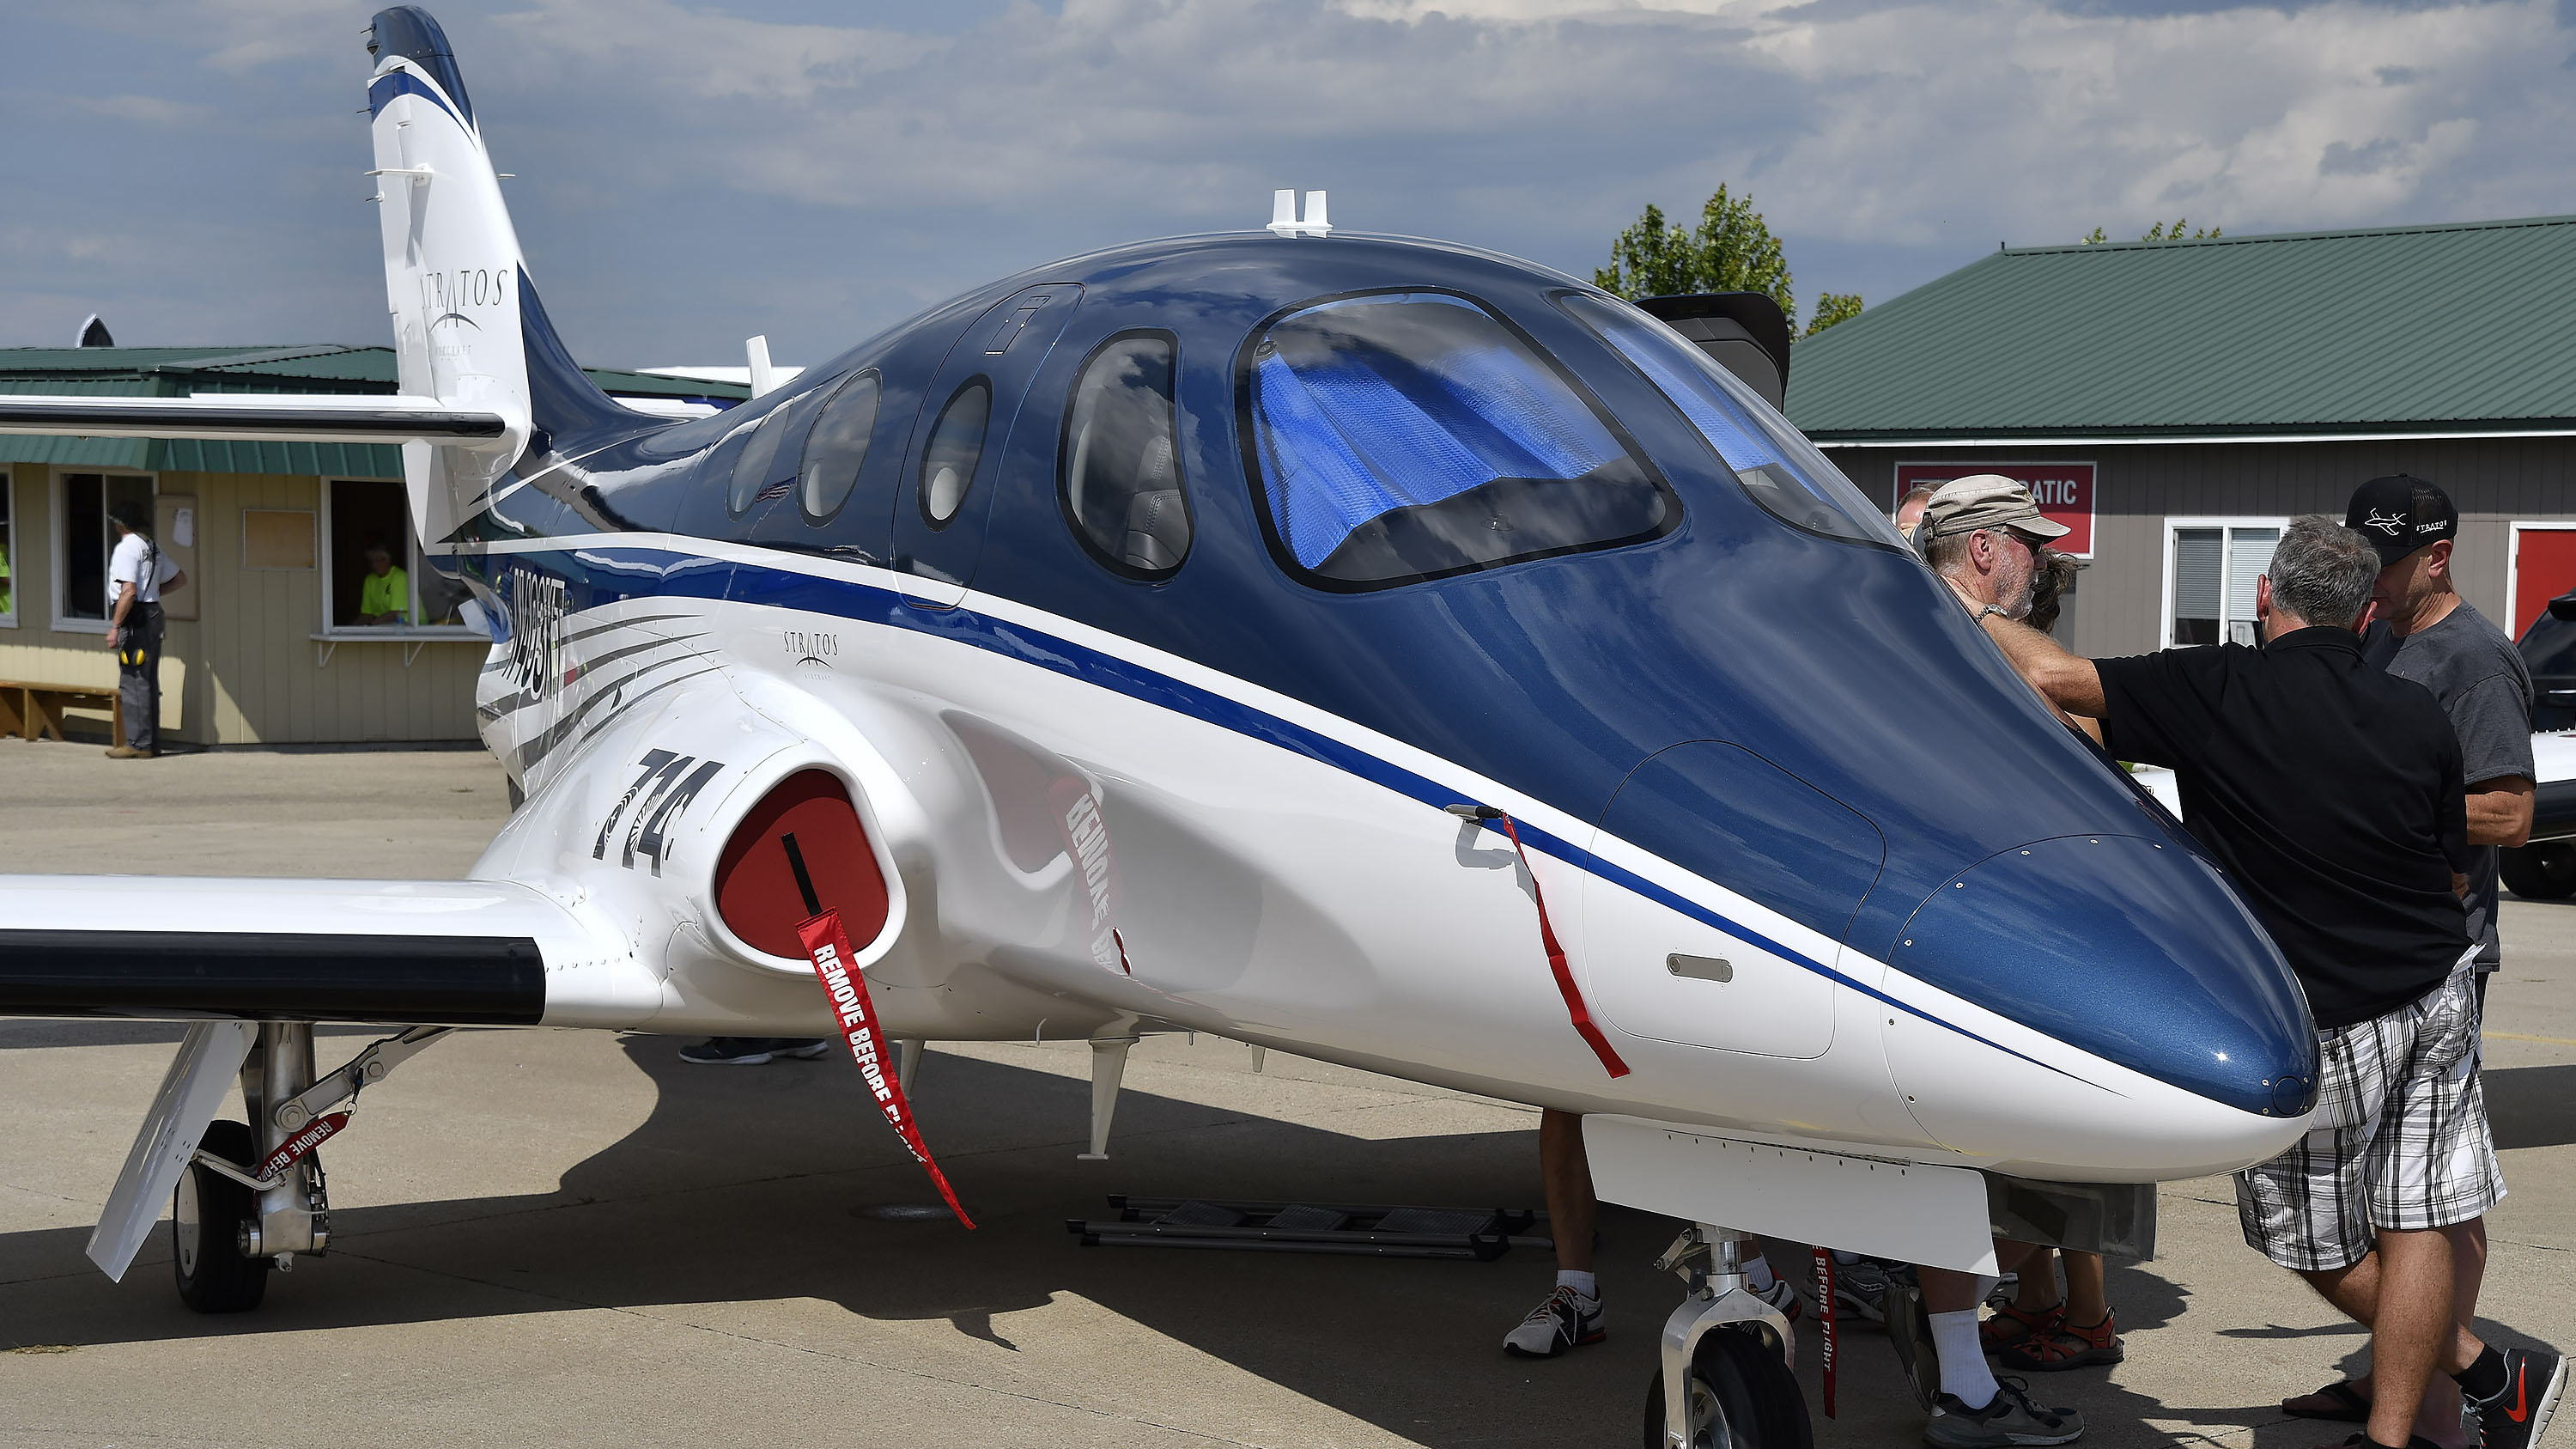 The 400-knot Stratos personal jet is on display at Boeing Plaza during EAA AirVenture at Wittman Regional Airport in Oshkosh, Wisconsin, July 23. Photo by David Tulis.